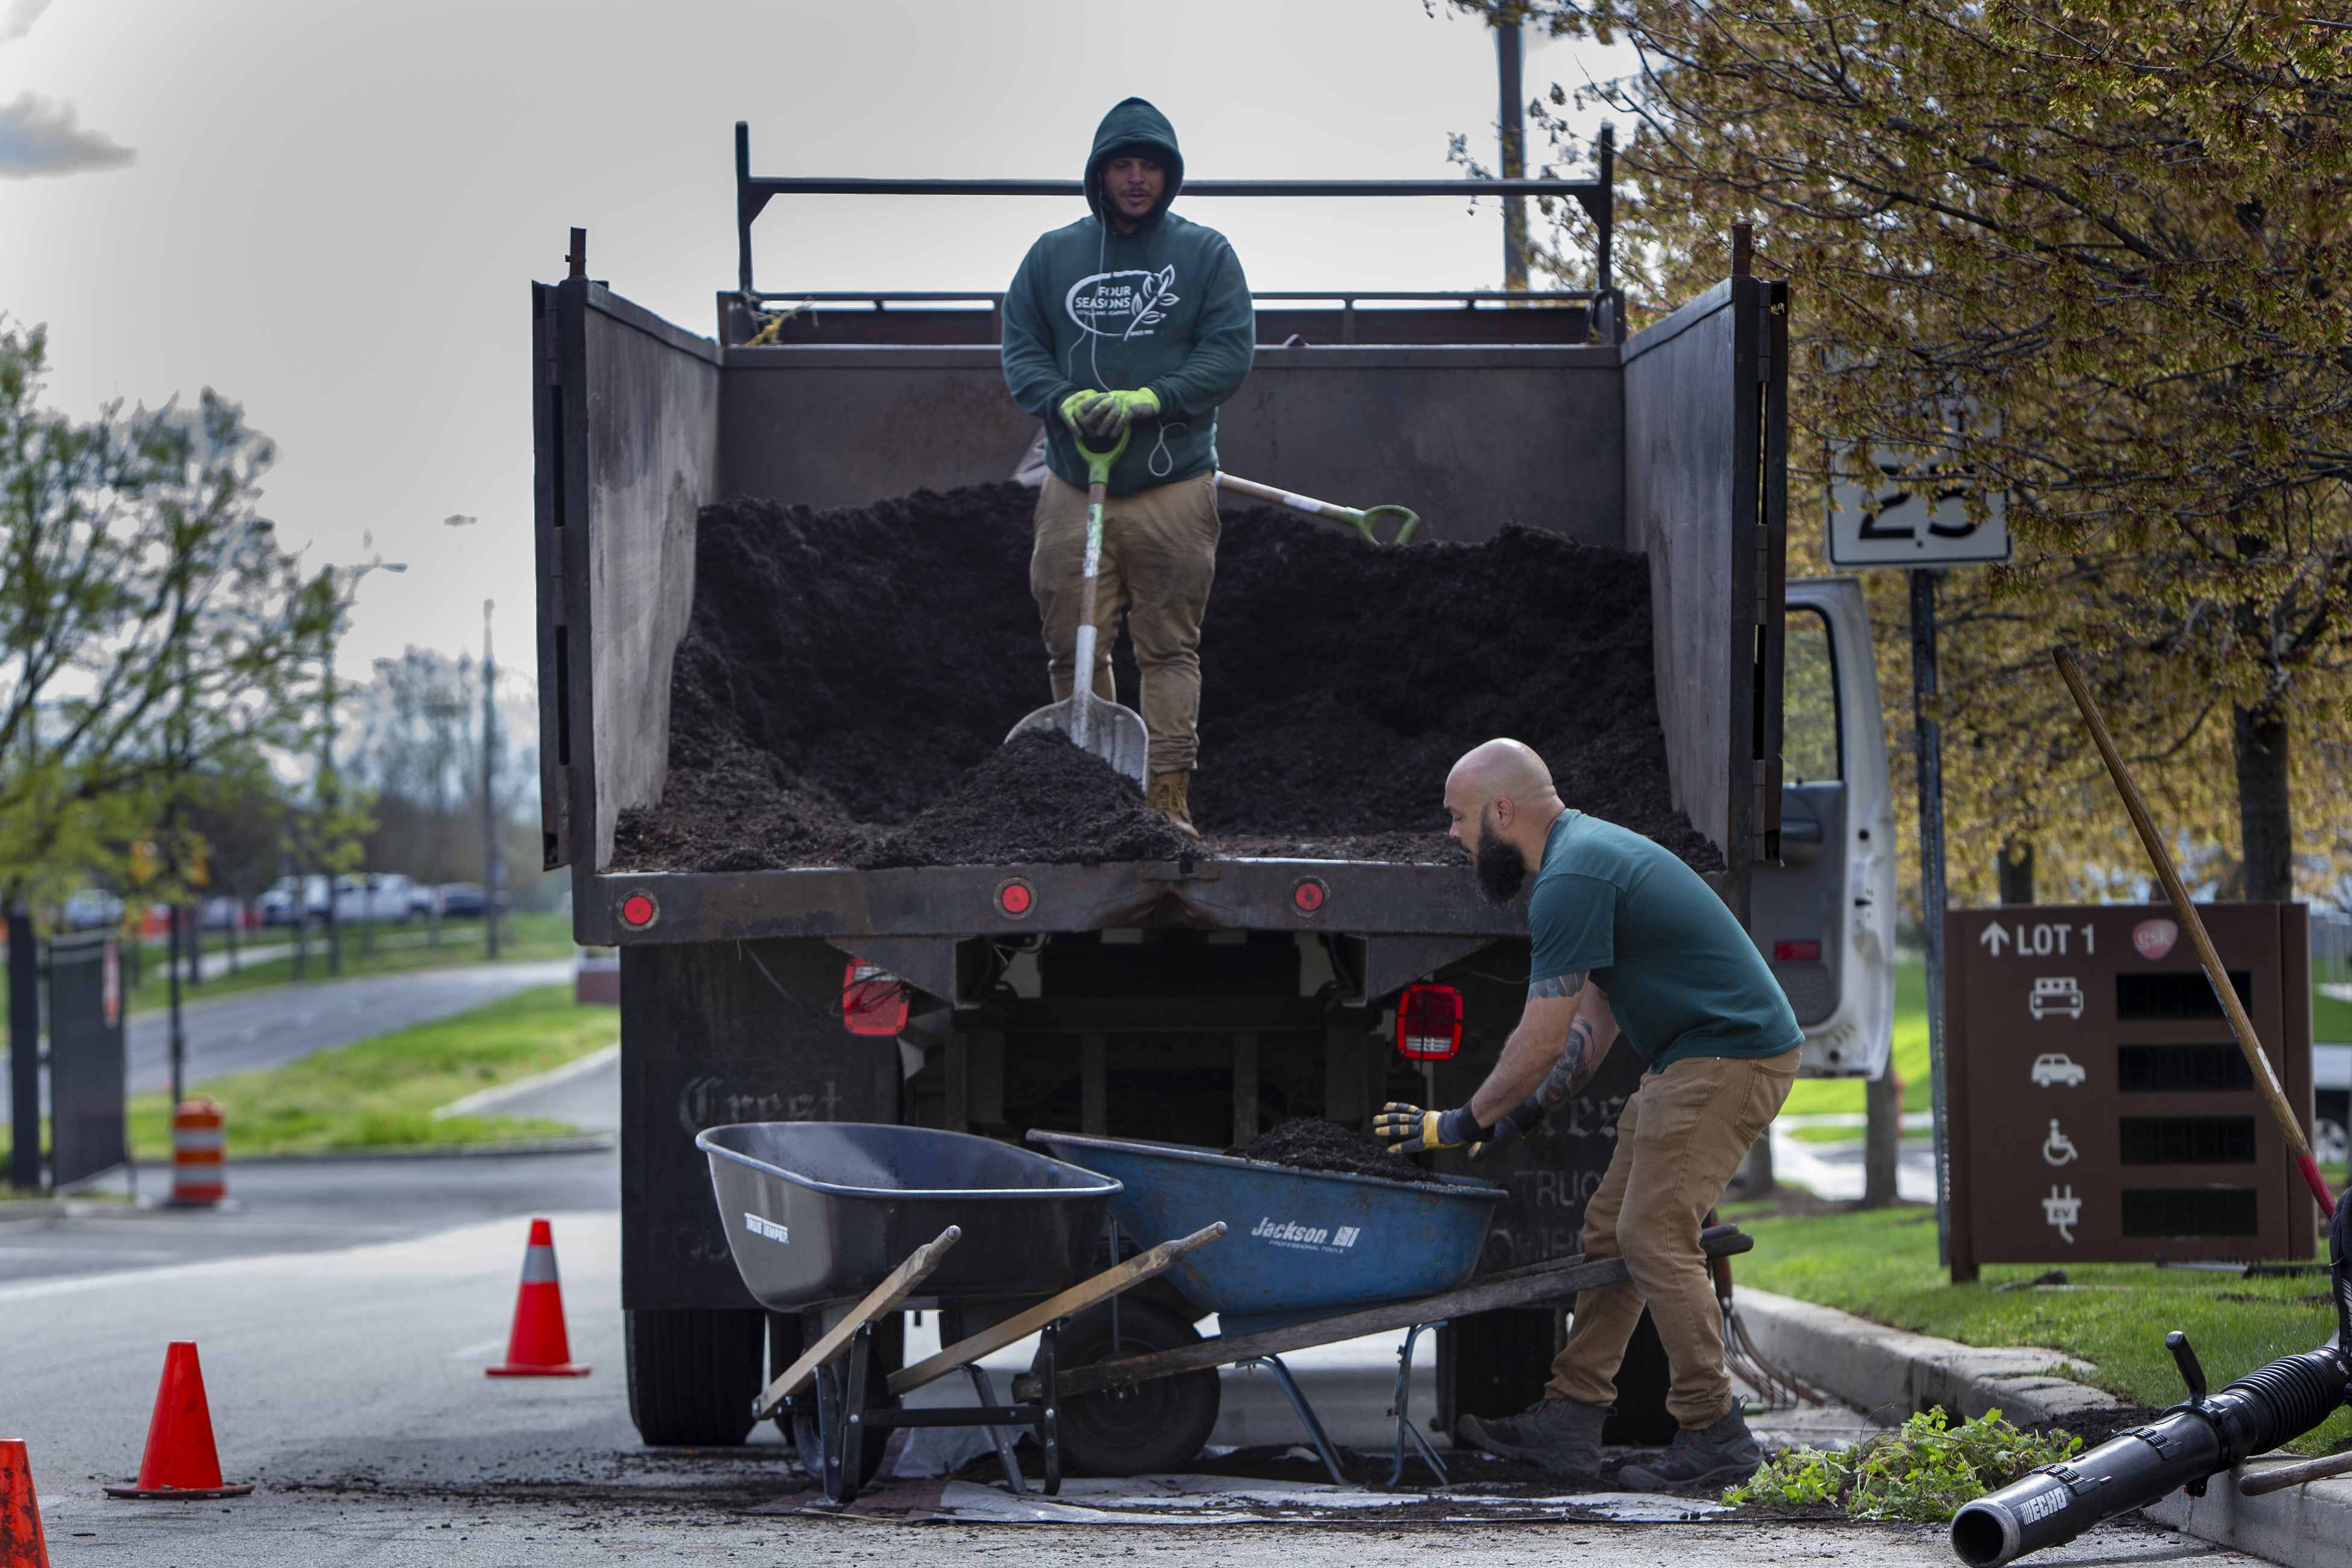 Cameron Corbett removes mulch from a Four Seasons Total Landscaping truck for the flower beds at Navy Yard. On the truck is fellow Four Seasons worker Richard Vanhart.